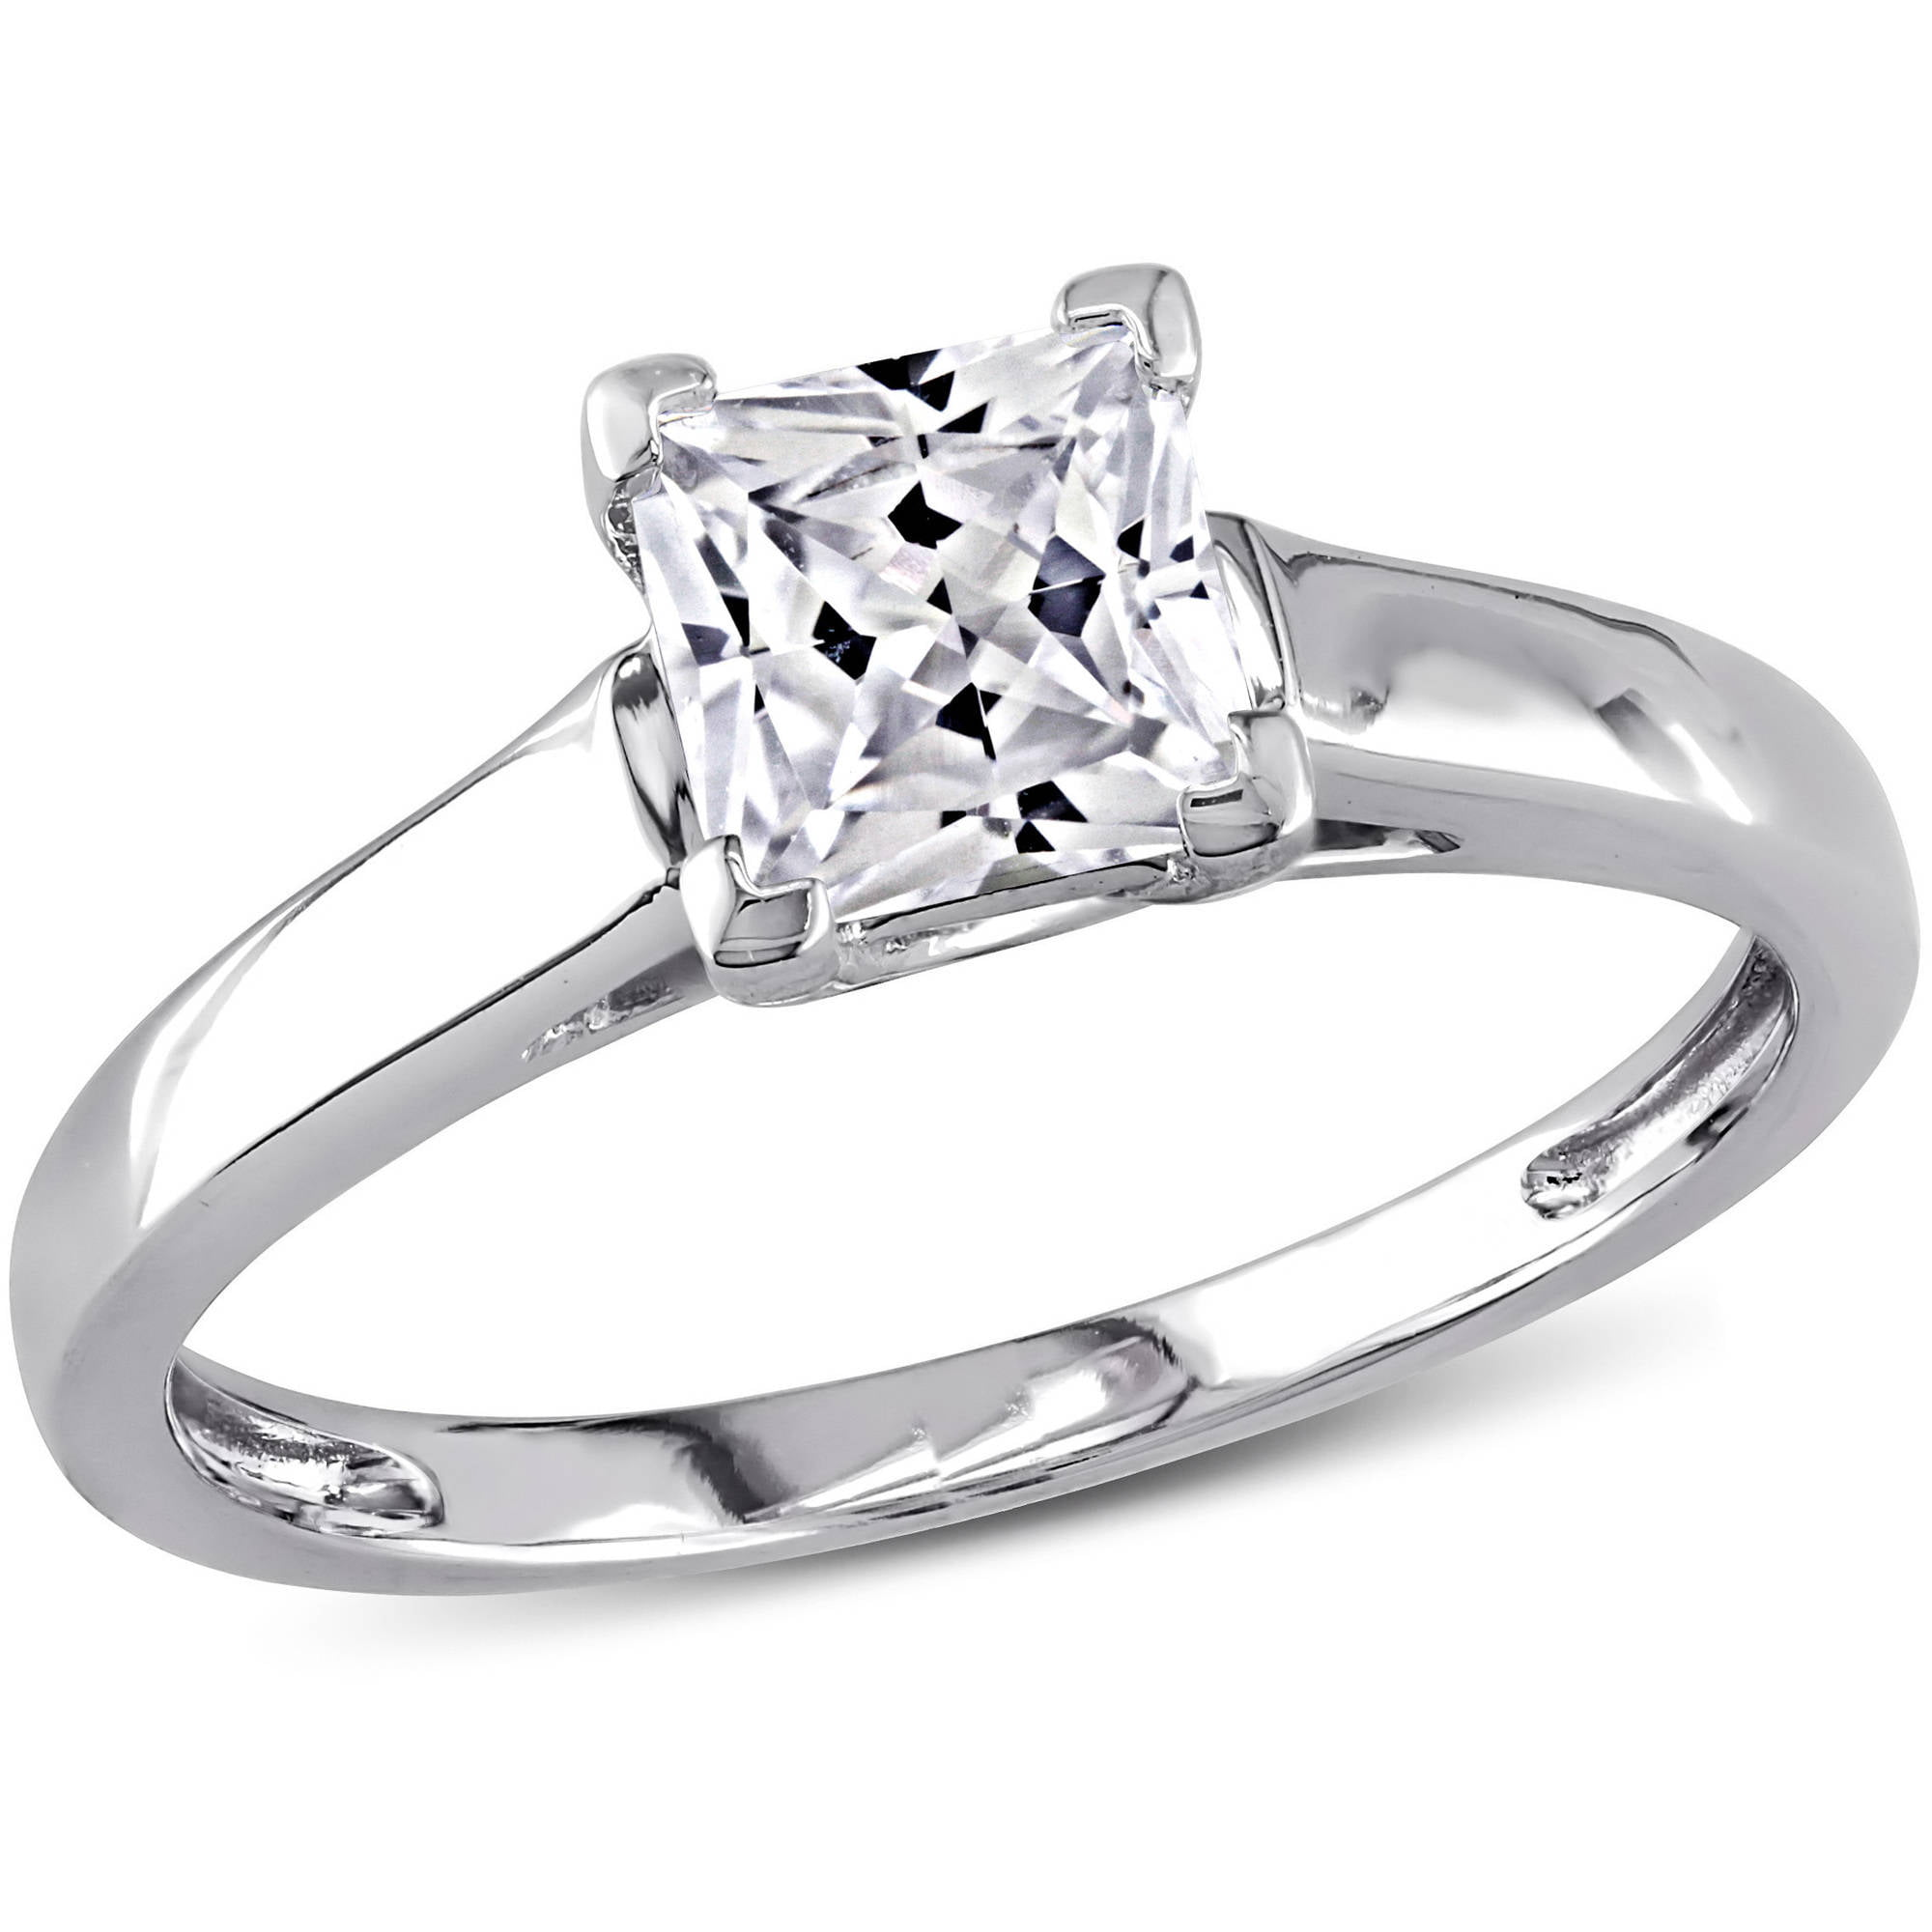 1-1/2 carat t.w. genuine princess white diamond 14kt white gold